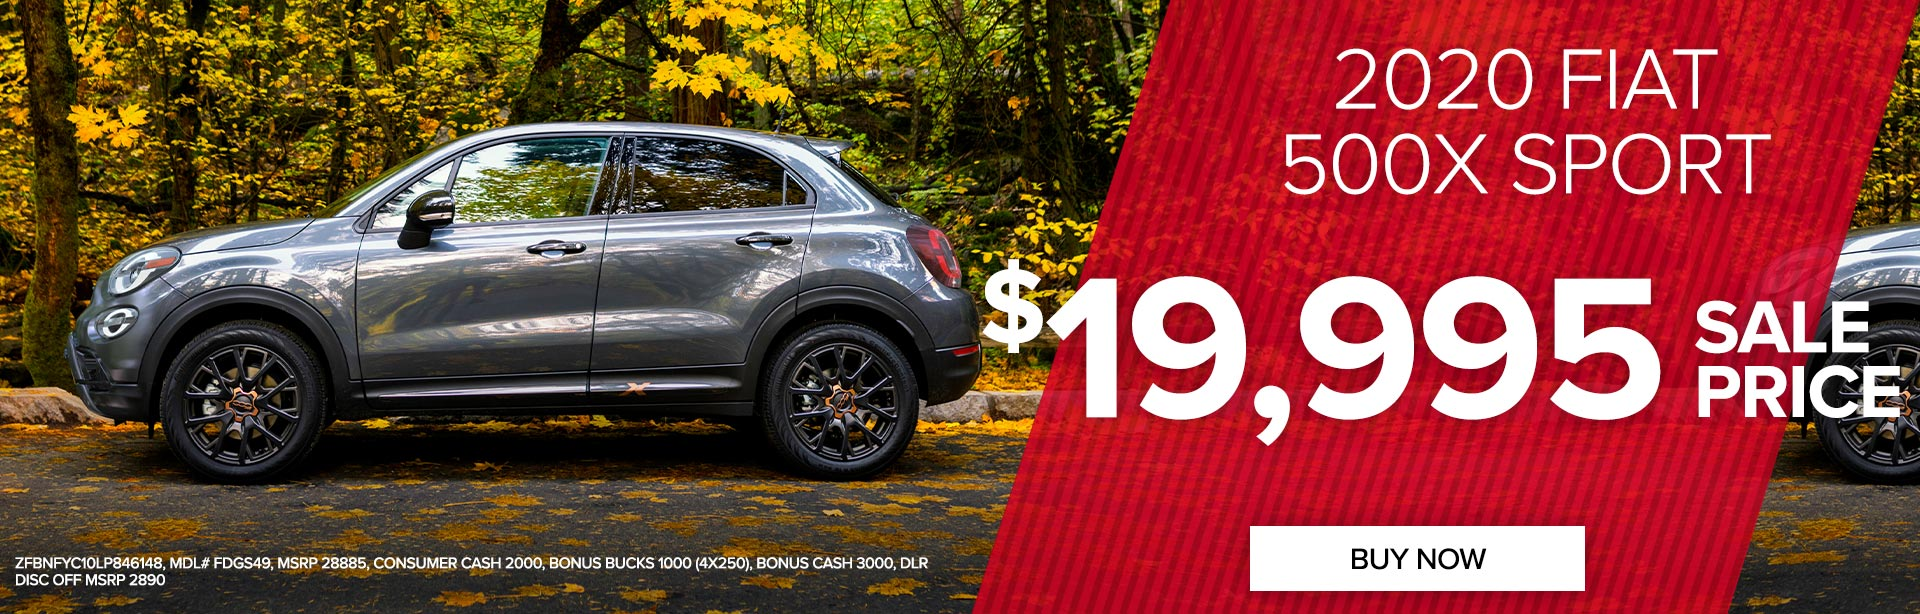 Get a 2020 FIAT 500X Sport for $19,995